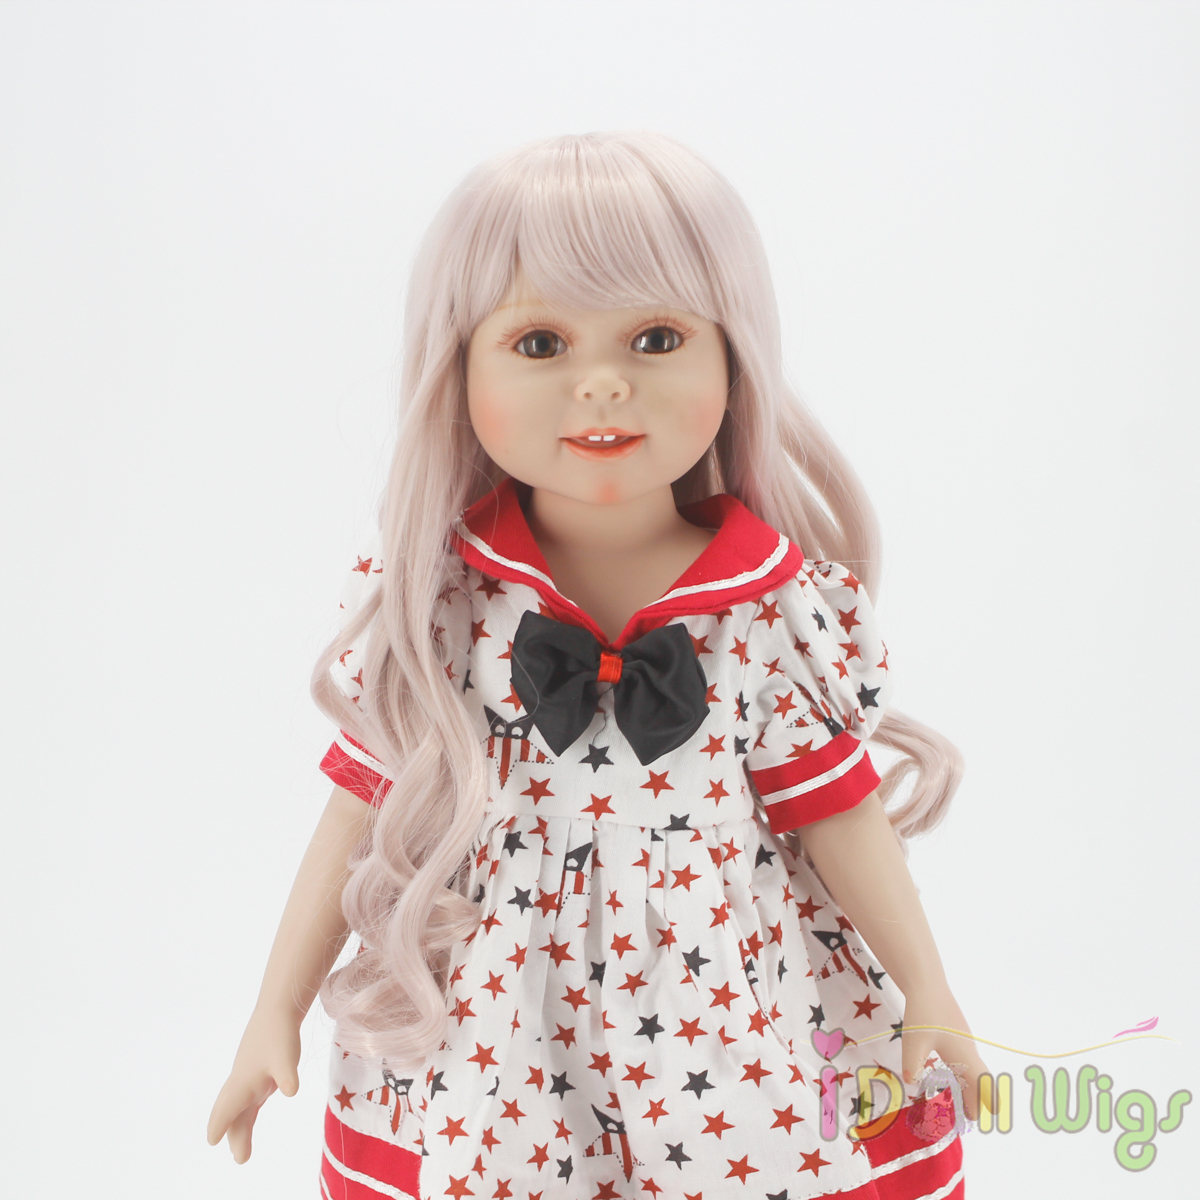 Wigs Only Taro Miilk Wigs for 18 39 39 American Dolls Reborn Dolls with 10 11inch Head Heat Resistant Synthetic Hair Accessory in Dolls Accessories from Toys amp Hobbies